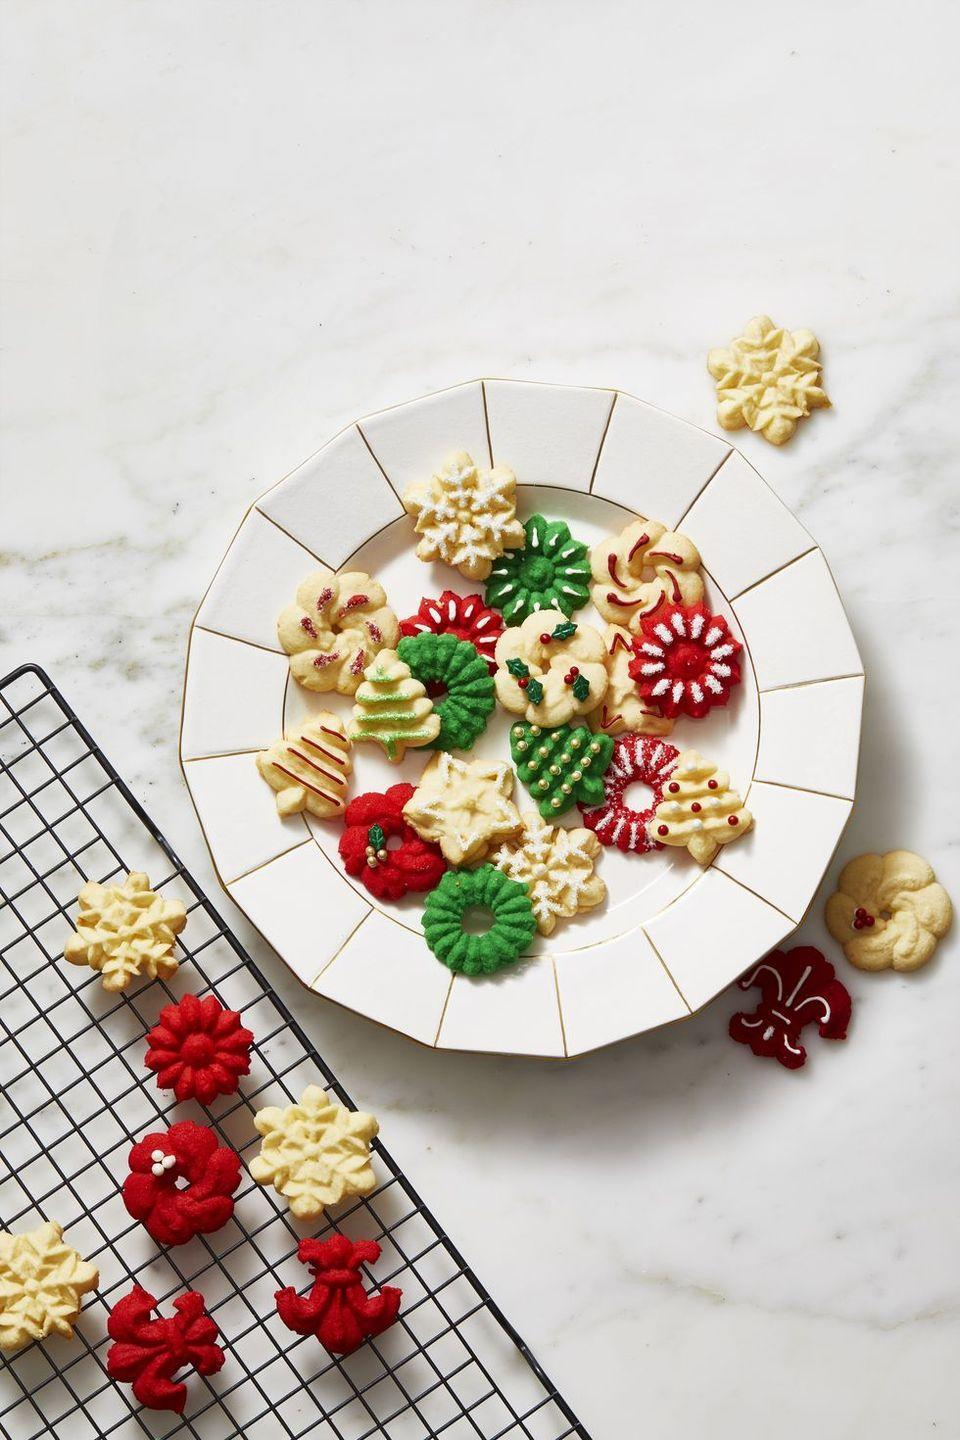 """<p>They may look store-bought, but with the help of a cookie press, these buttery treats are super simple to make at home.</p><p><em><a href=""""https://www.goodhousekeeping.com/food-recipes/a11212/spritz-cookies-recipe-ghk1211/"""" rel=""""nofollow noopener"""" target=""""_blank"""" data-ylk=""""slk:Get the recipe for Holiday Spritz Cookies »"""" class=""""link rapid-noclick-resp"""">Get the recipe for Holiday Spritz Cookies »</a></em></p><p><a class=""""link rapid-noclick-resp"""" href=""""https://www.amazon.com/OXO-Grips-Cookie-Stainless-Storage/dp/B00ABH0PYI?linkCode=ogi&tag=syn-yahoo-20&ascsubtag=%5Bartid%7C10063.g.34851223%5Bsrc%7Cyahoo-us"""" rel=""""nofollow noopener"""" target=""""_blank"""" data-ylk=""""slk:SHOP NOW"""">SHOP NOW</a></p>"""